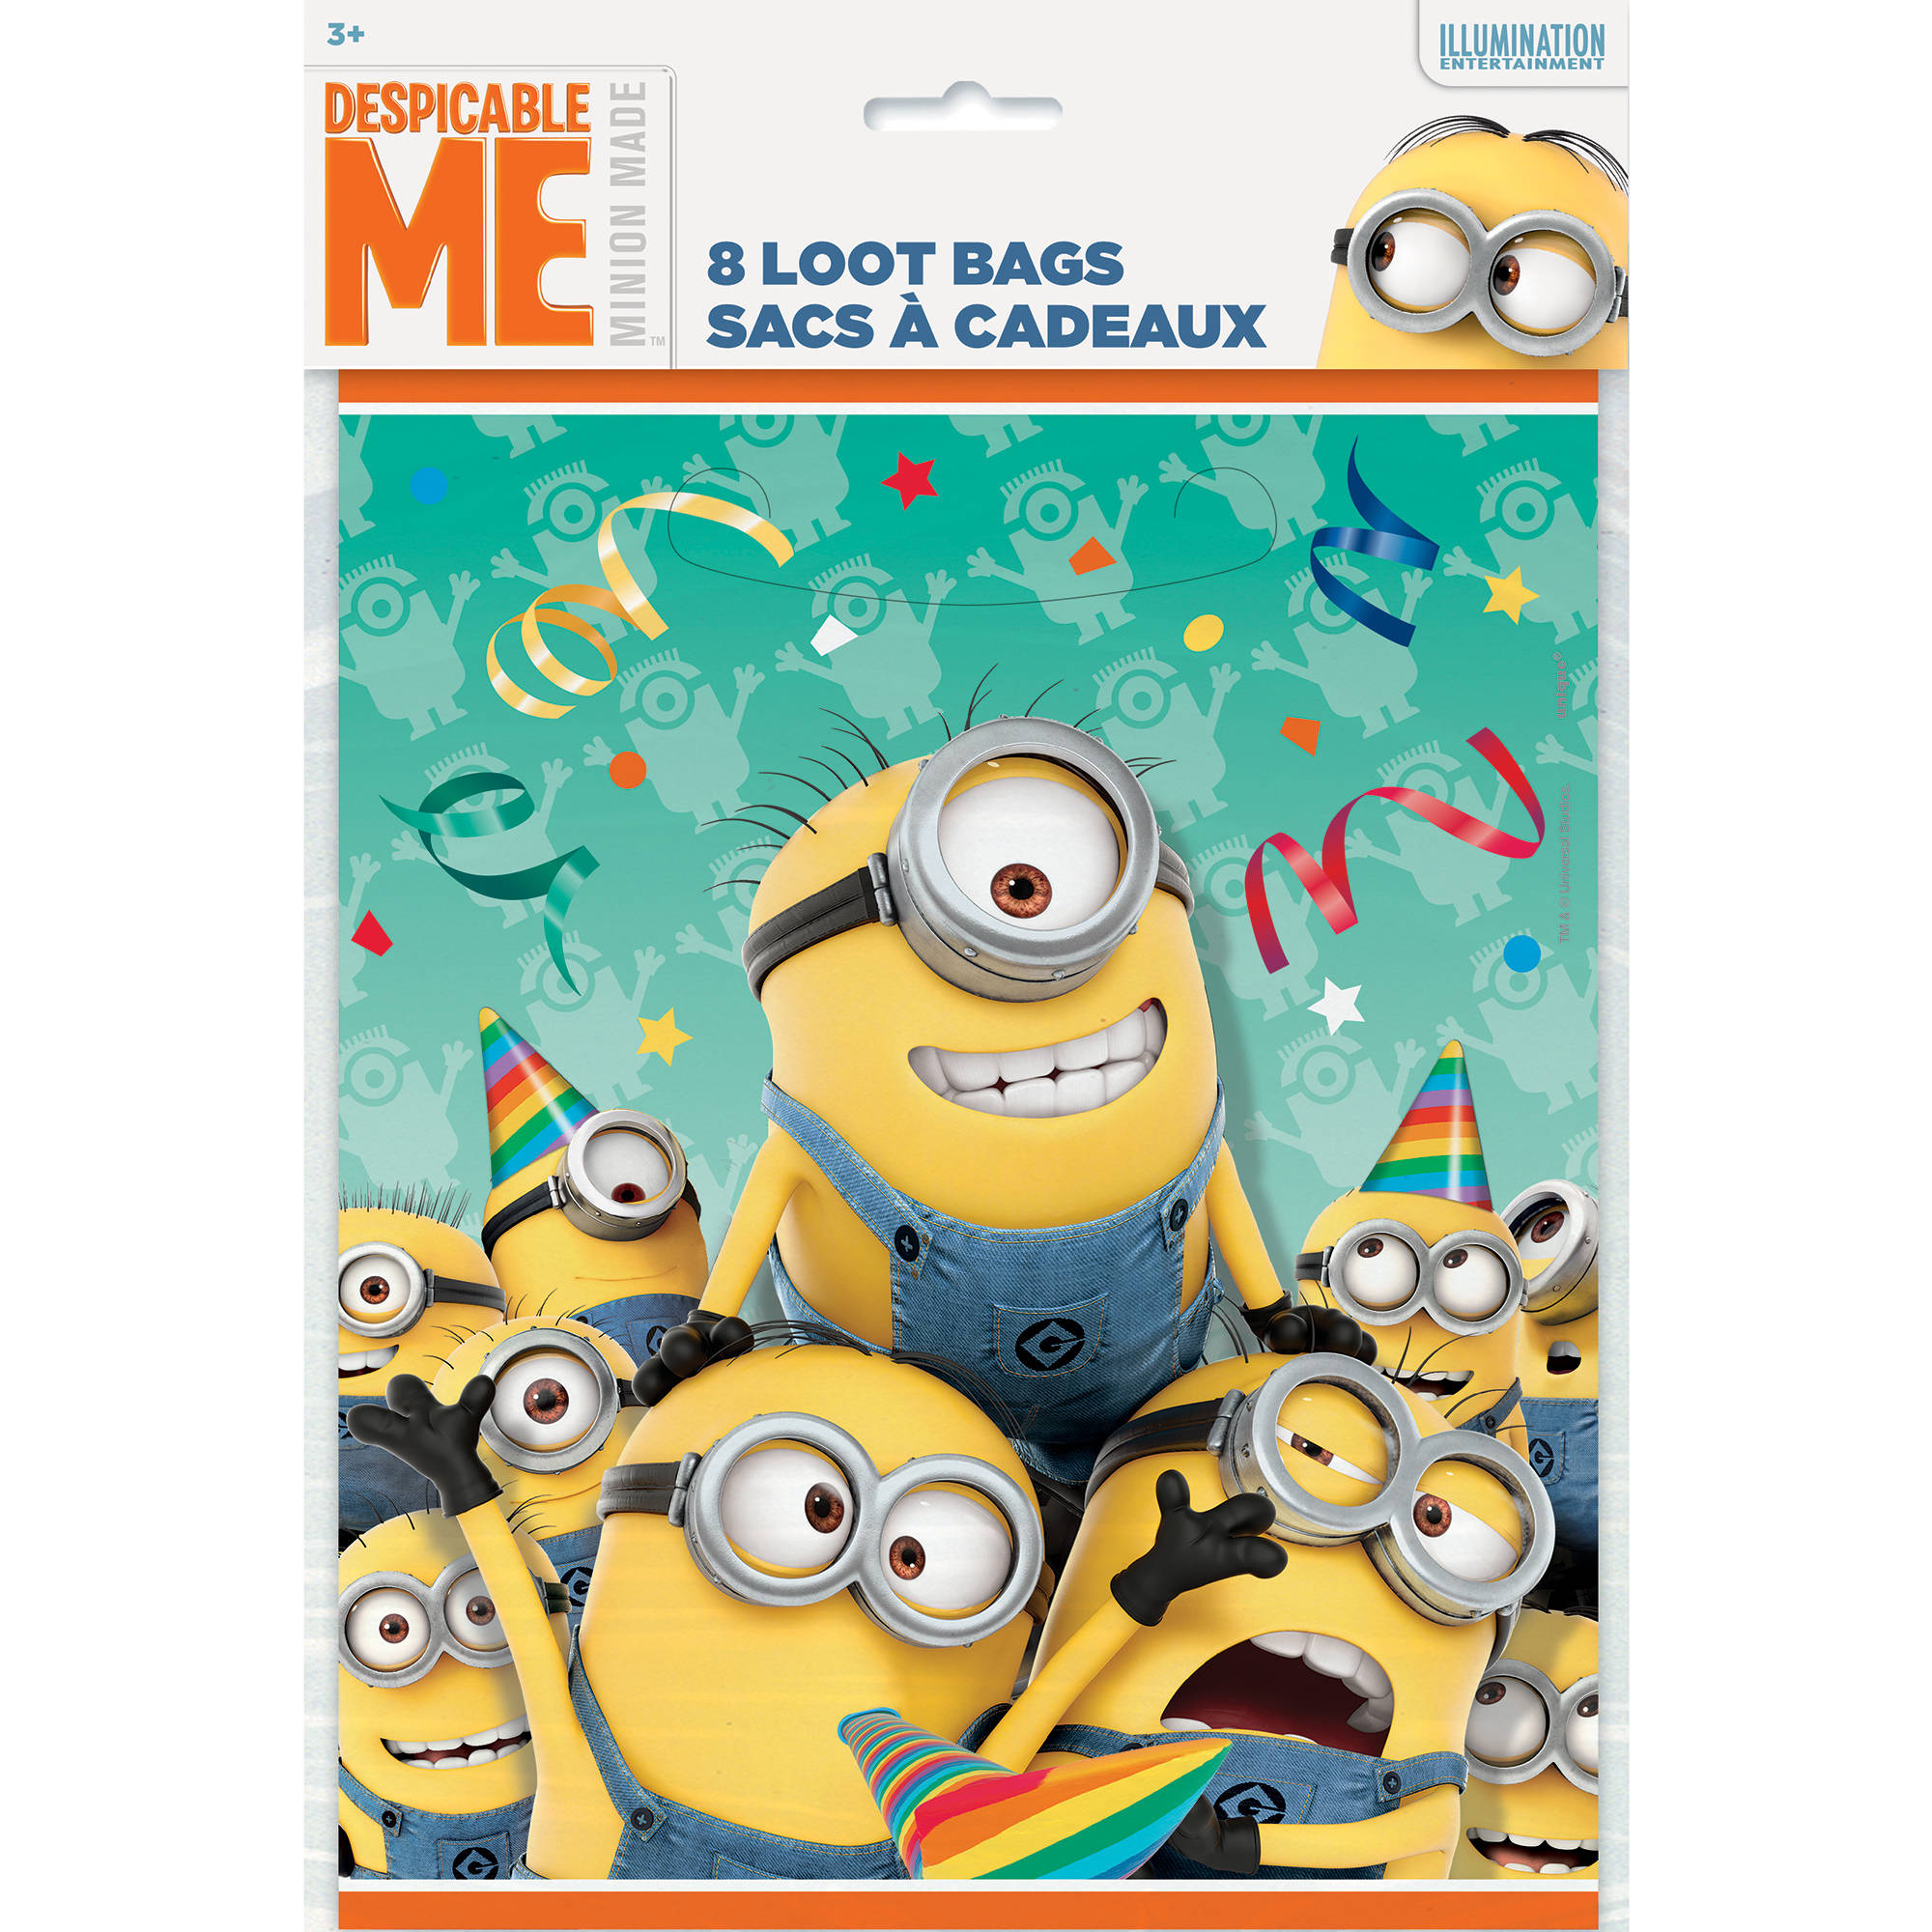 Despicable Me Minions 8 Count Plastic Loot Bags Paper Goods Party Supplies